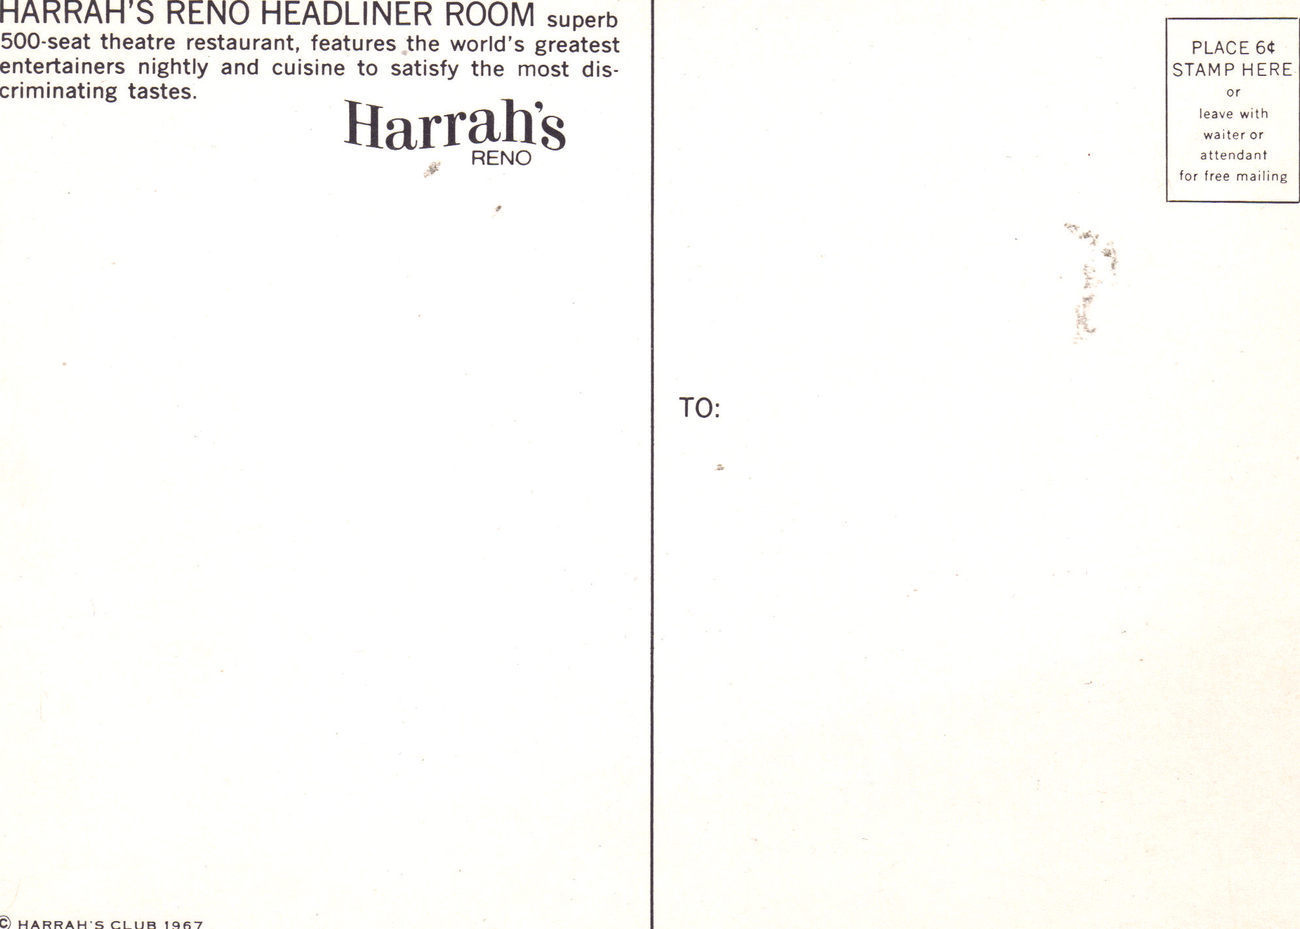 HARRAH'S RENO HEADLINER ROOM Postcard